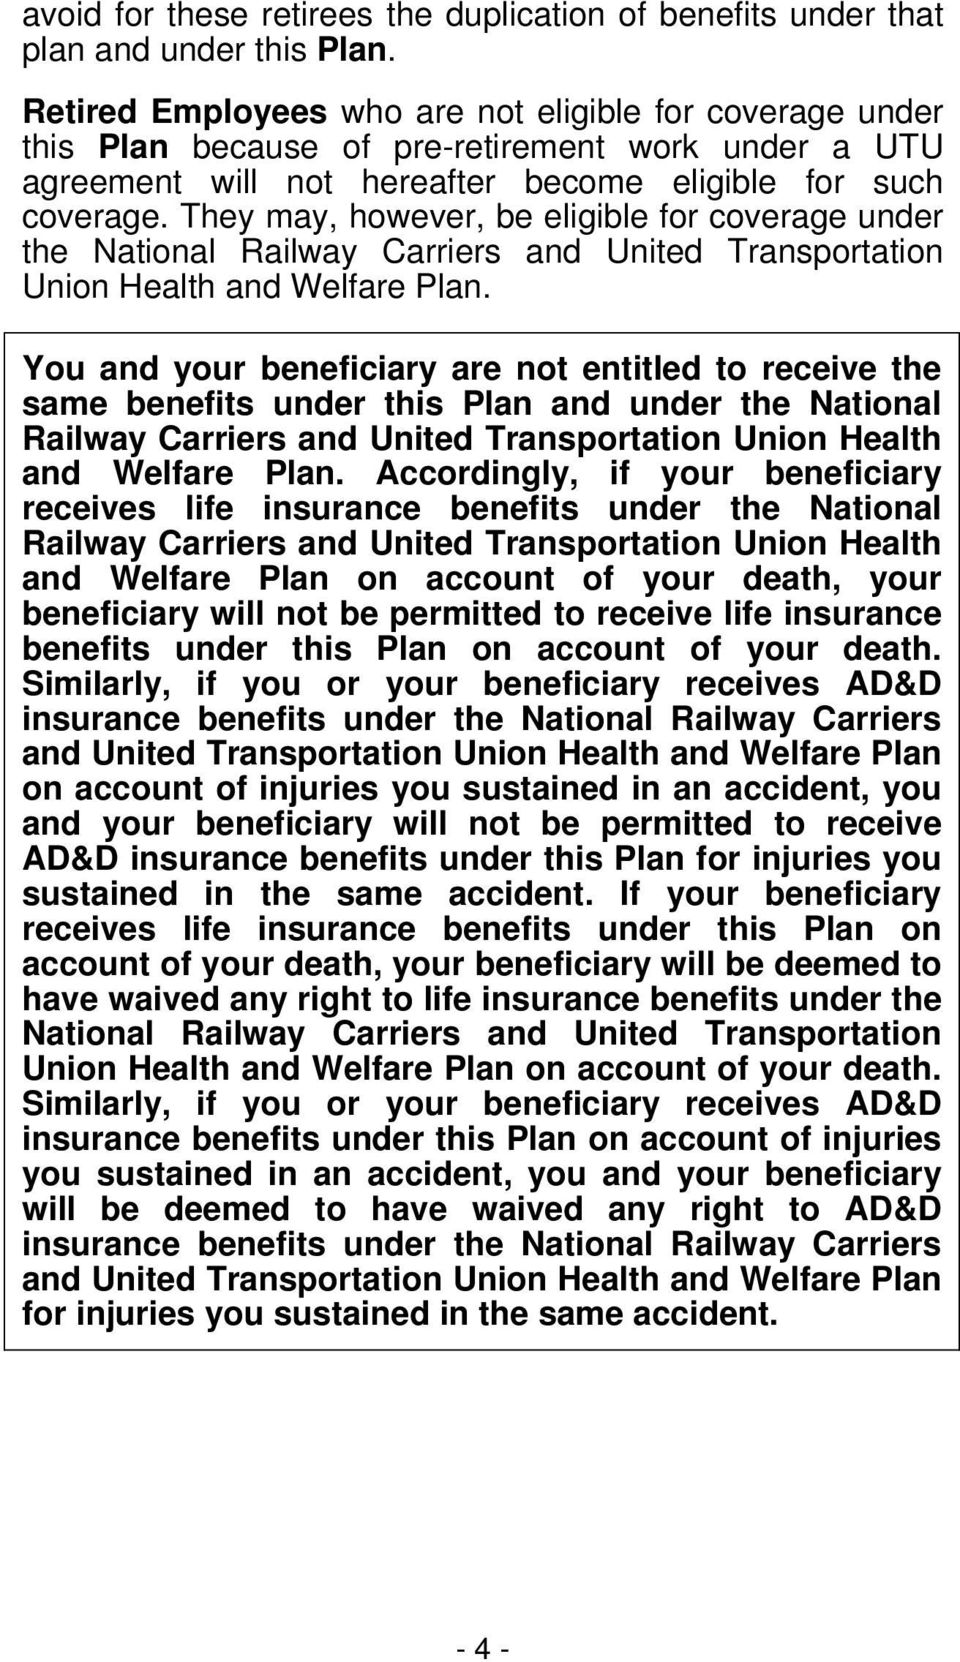 They may, however, be eligible for coverage under the National Railway Carriers and United Transportation Union Health and Welfare Plan.